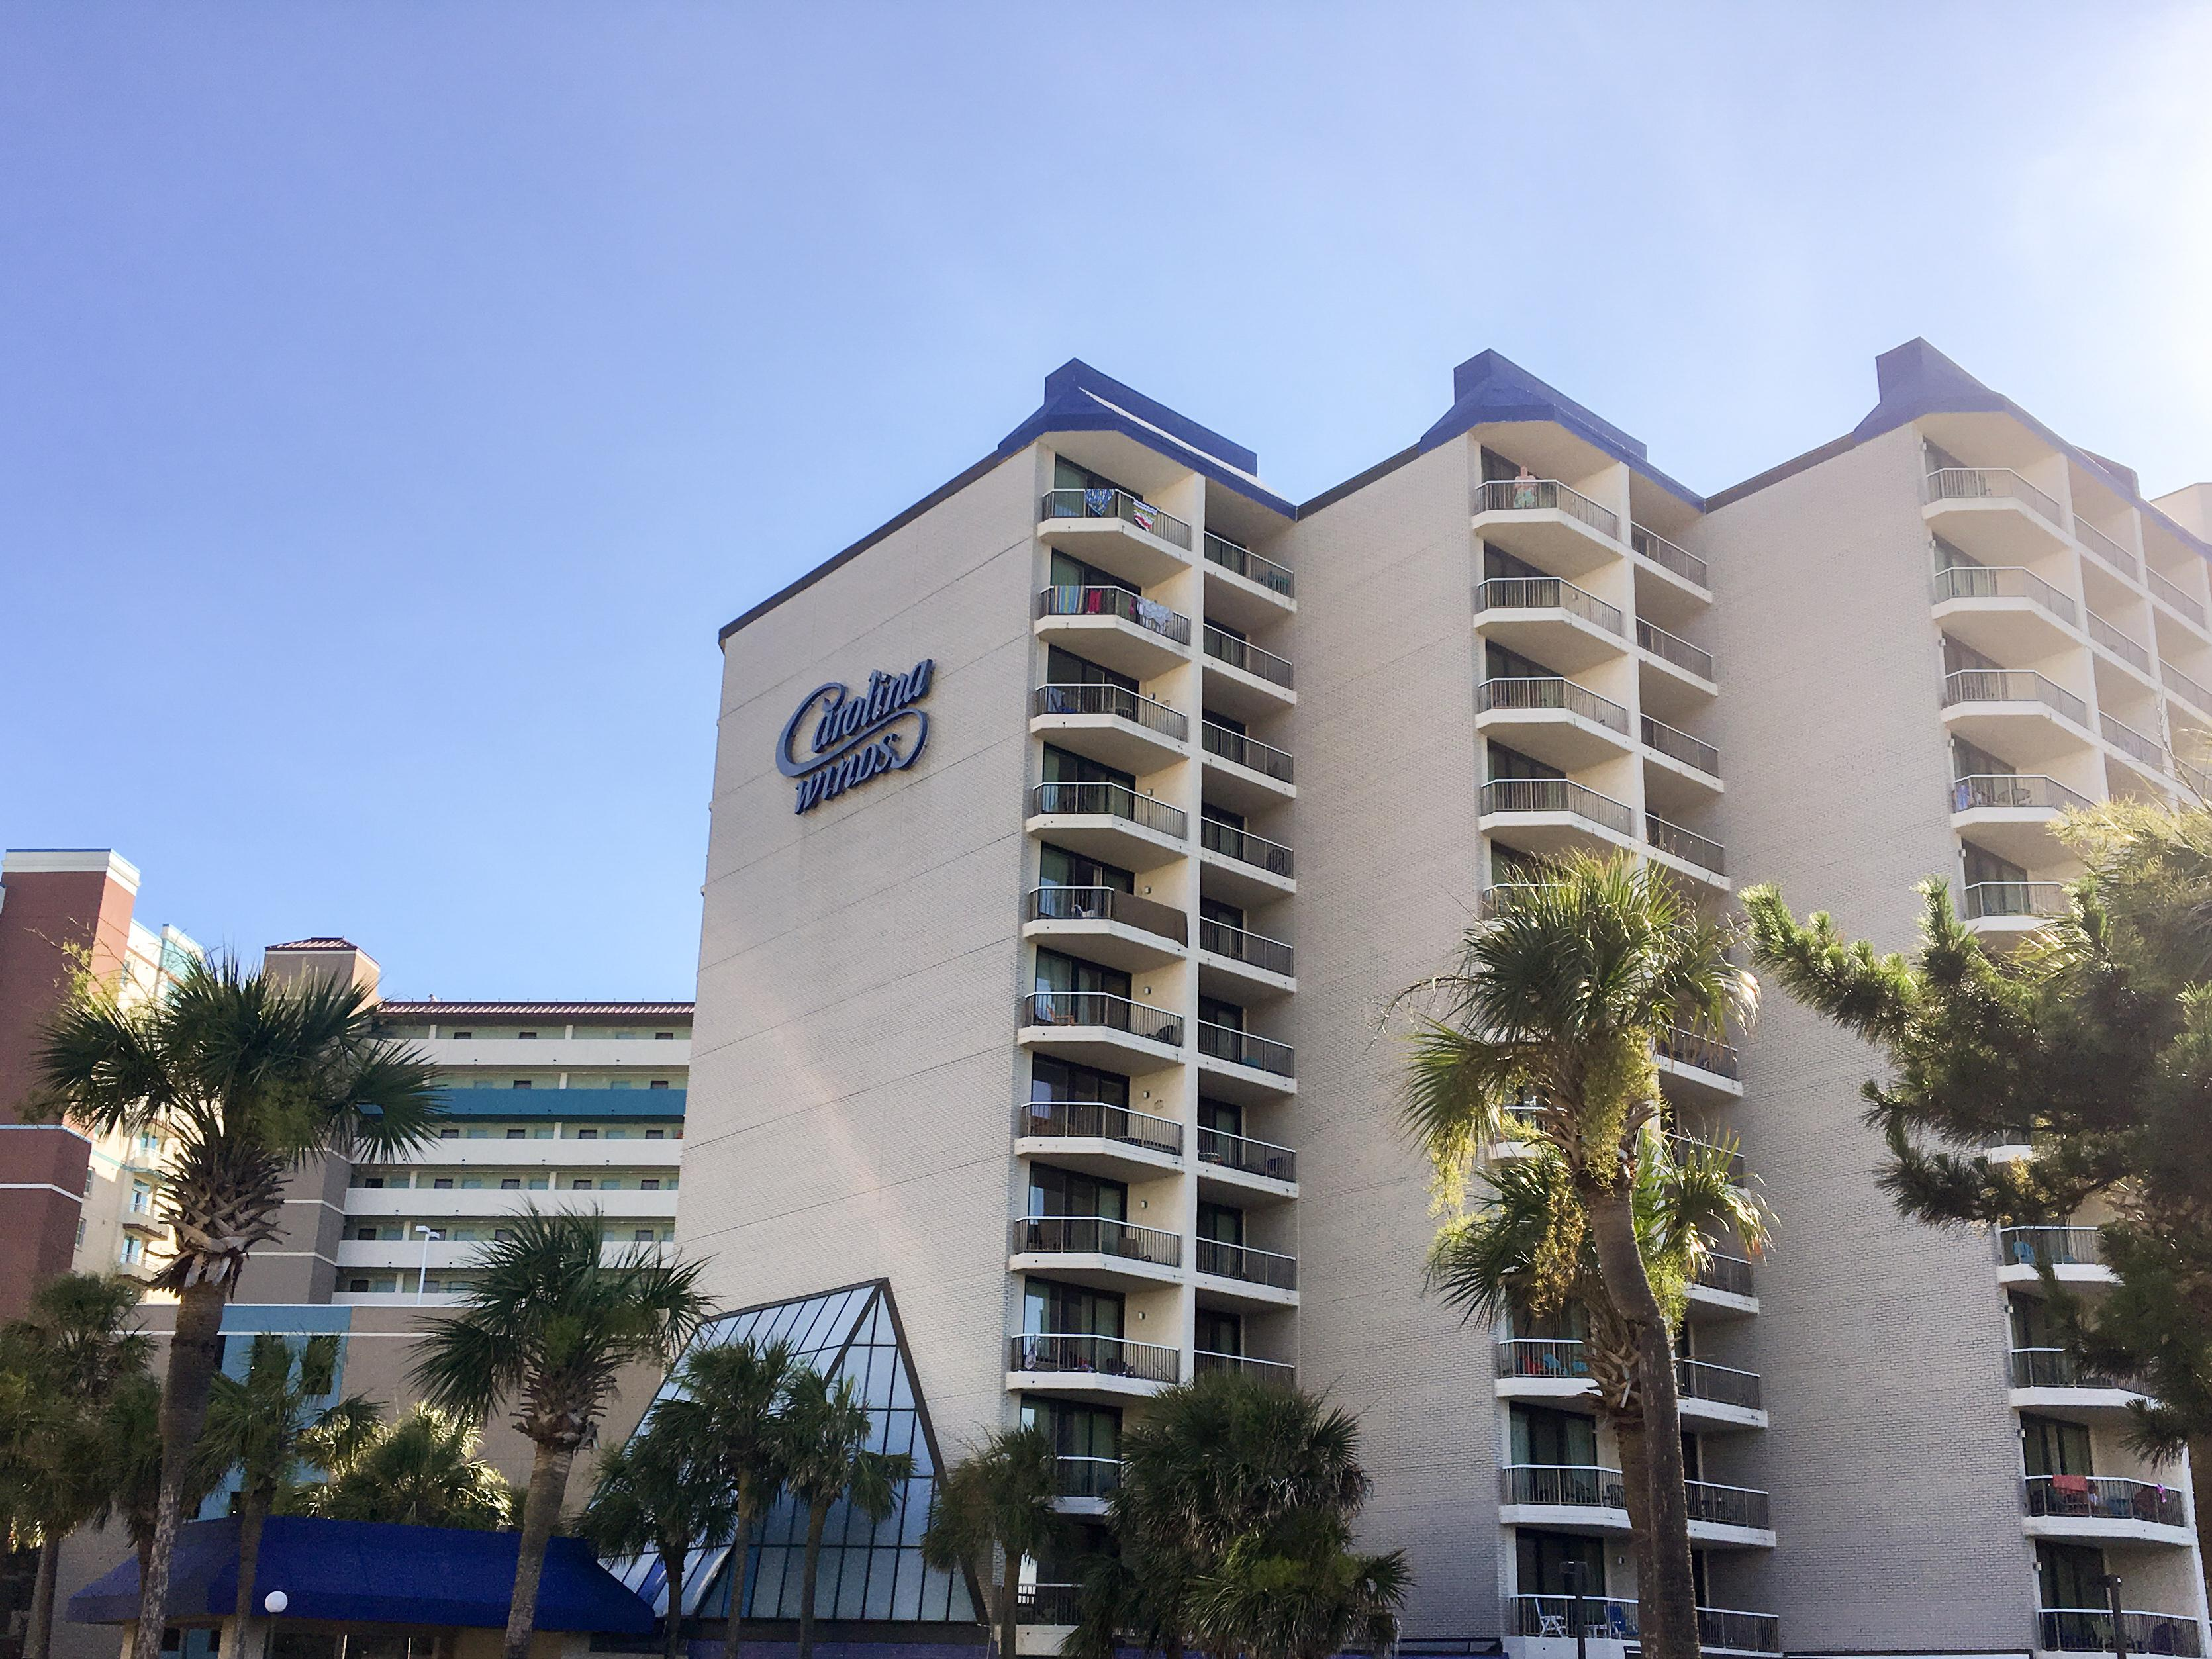 Located on the Grand Strand, you can walk from Carolina Winds to a variety of restaurants and attractions.